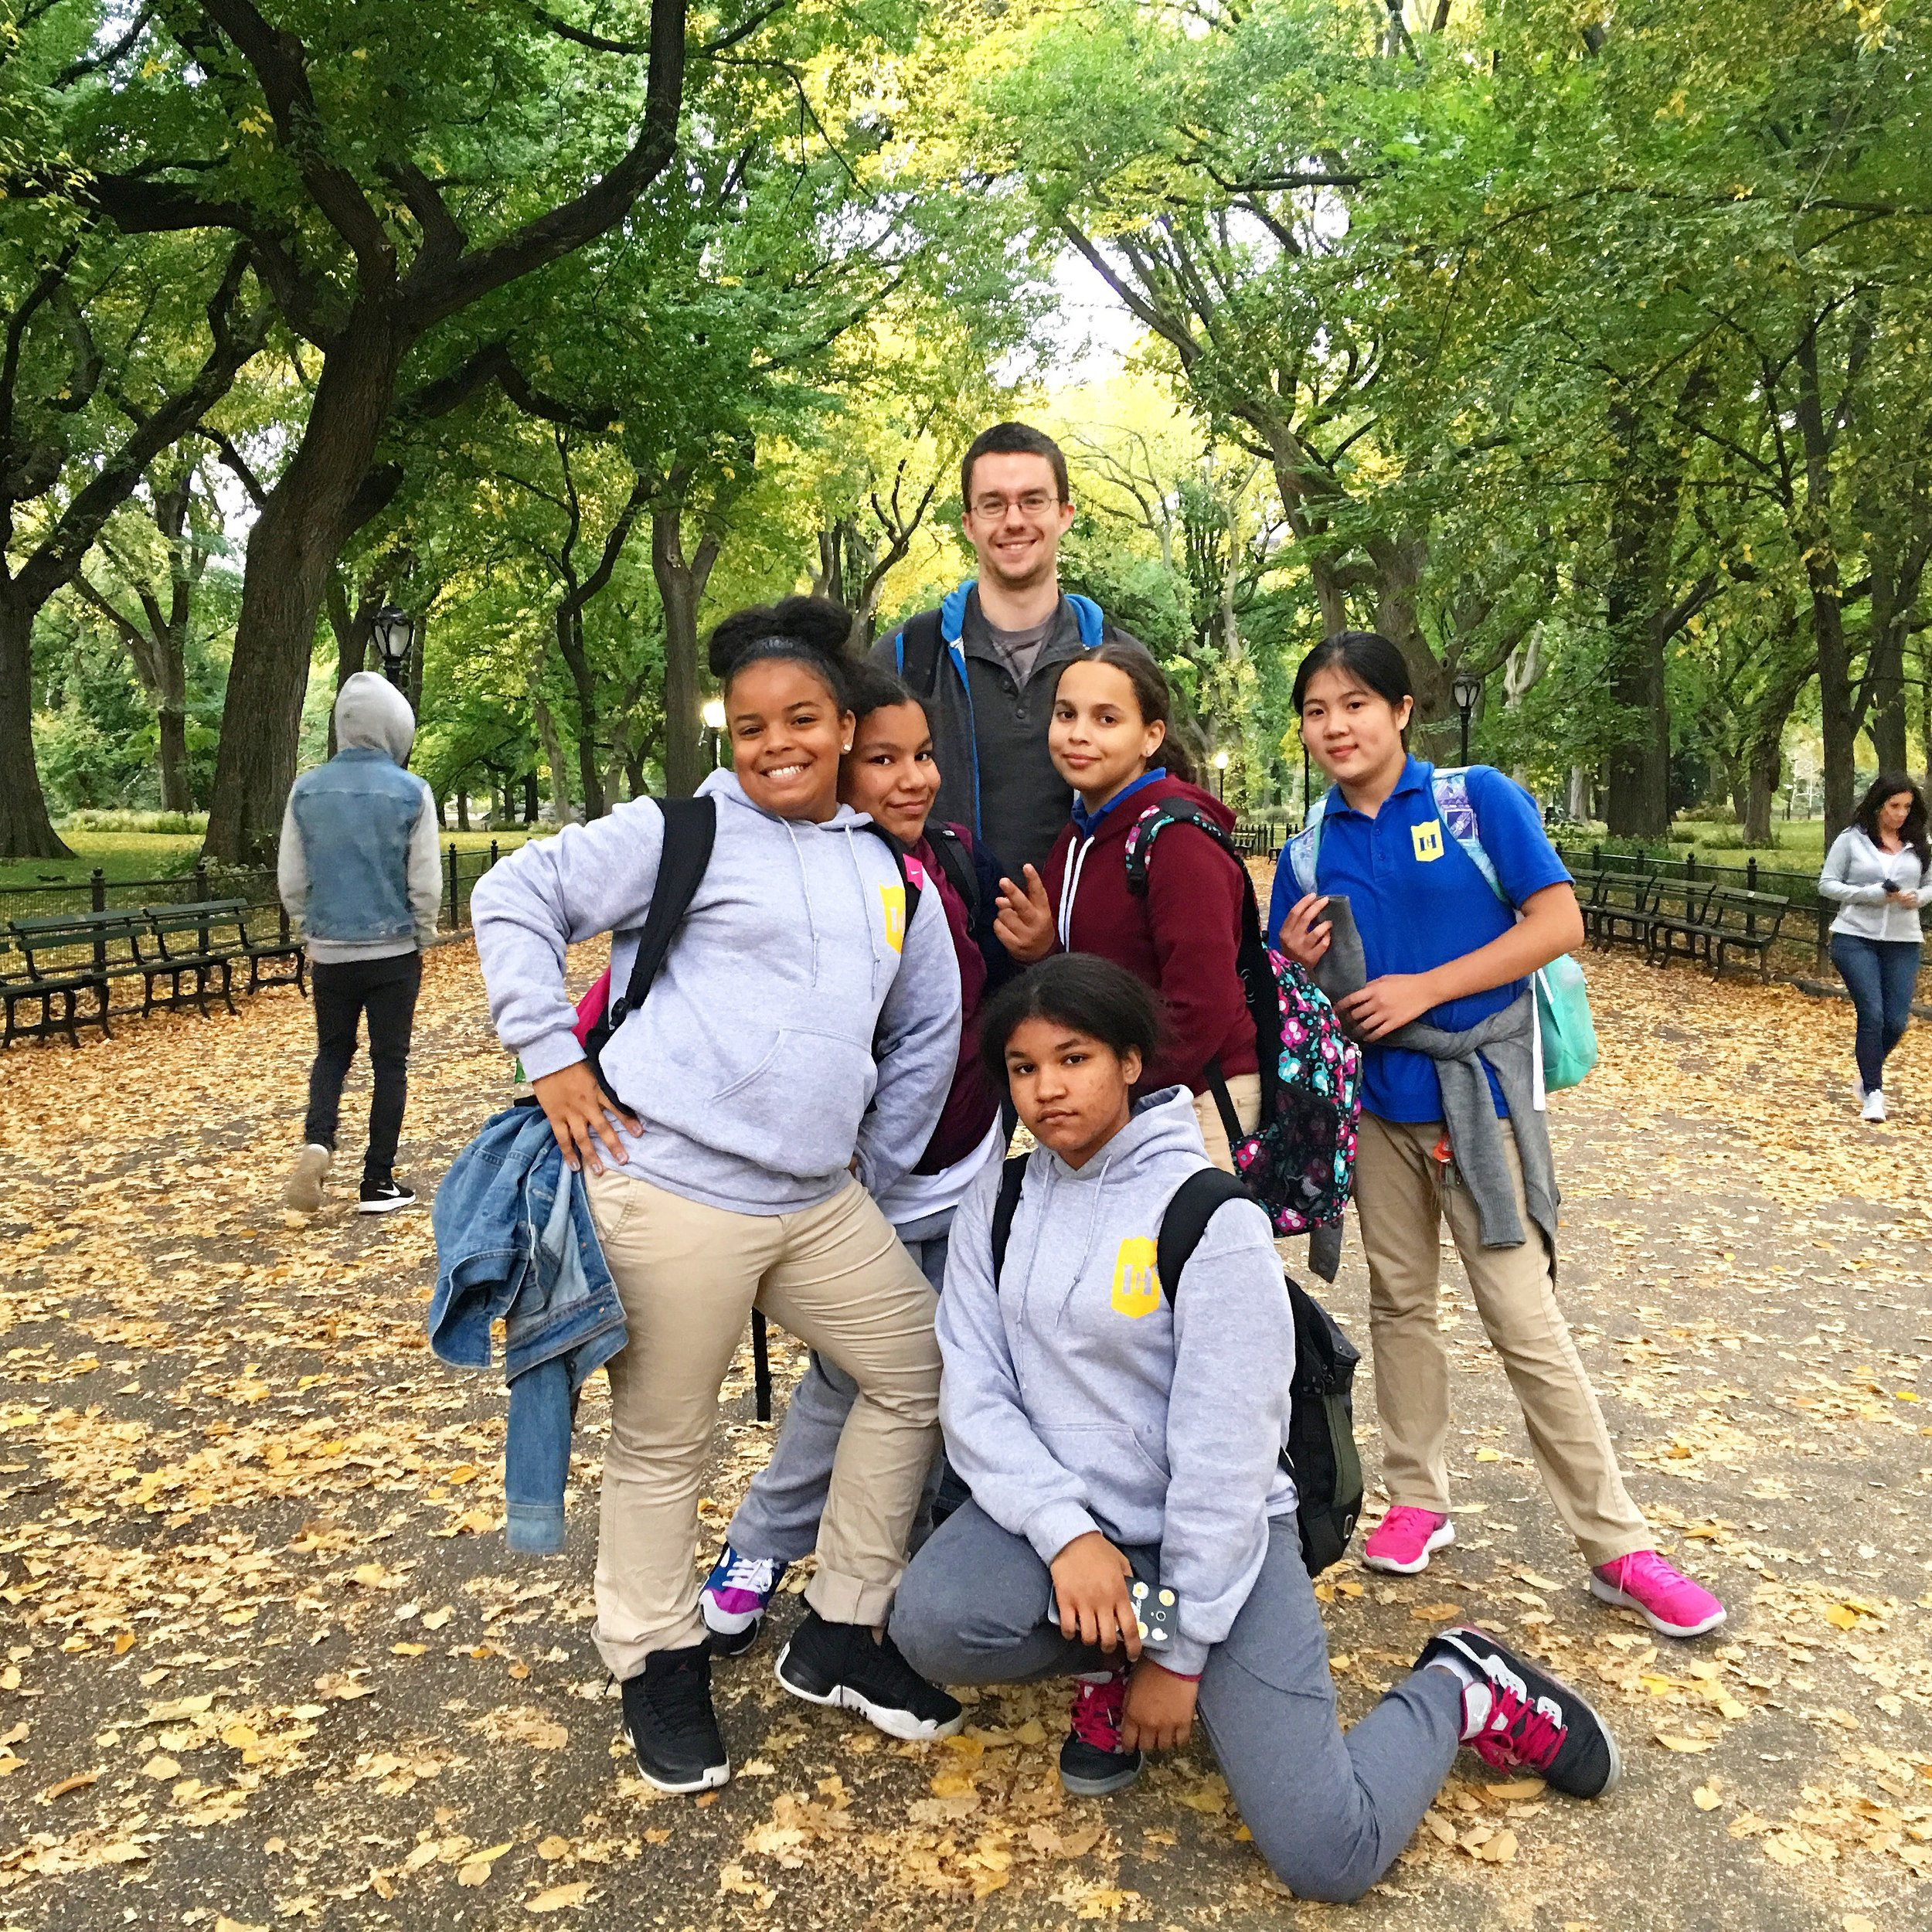 Visiting Public Art in Central Park! - After some students from Hamilton Grange Middle School told CITYarts they had never been to Central Park, we planned a tour of public artworks and memorials in this historical New York City park! Students enjoyed donated treats from Margot Patisserie and experienced a classic adventure in Central Park October, 2017.